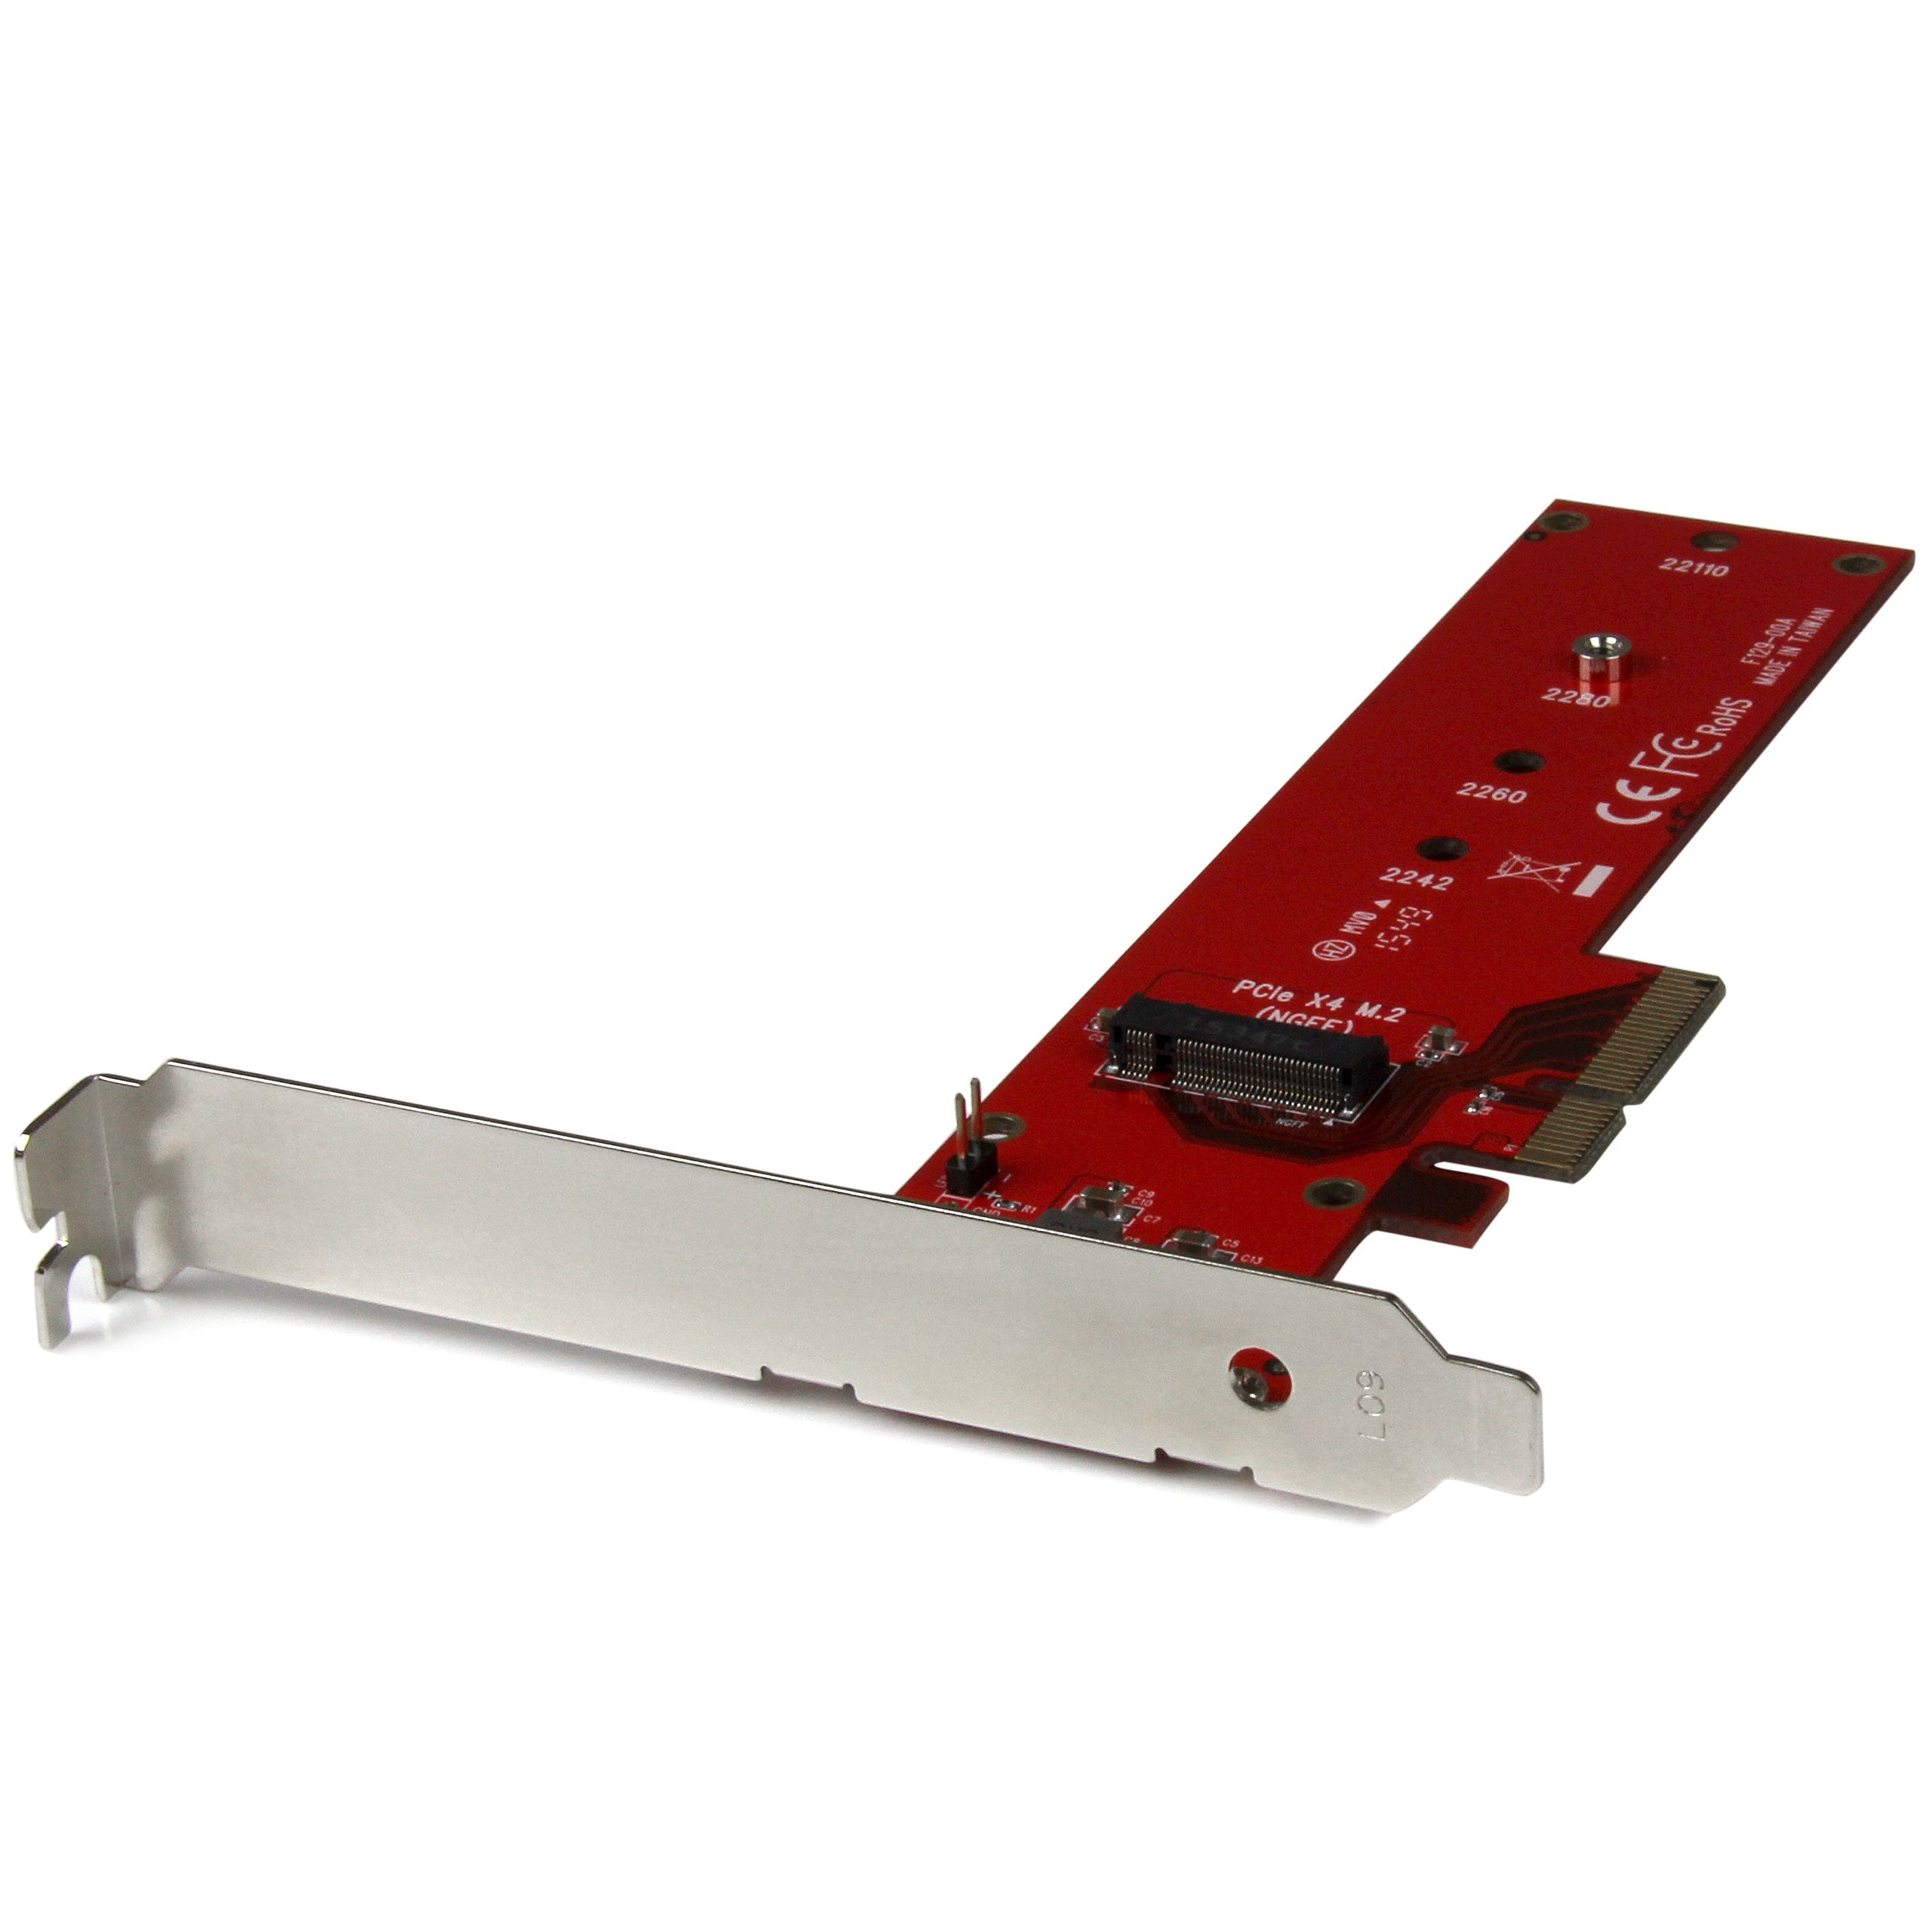 StarTech.com PEX4M2E1 M.2 Adapter – x4 PCIe 3.0 NVMe – Low Profile and Full Profile – SSD PCIE M.2 Adapter – M2 SSD – PCI Express SSD